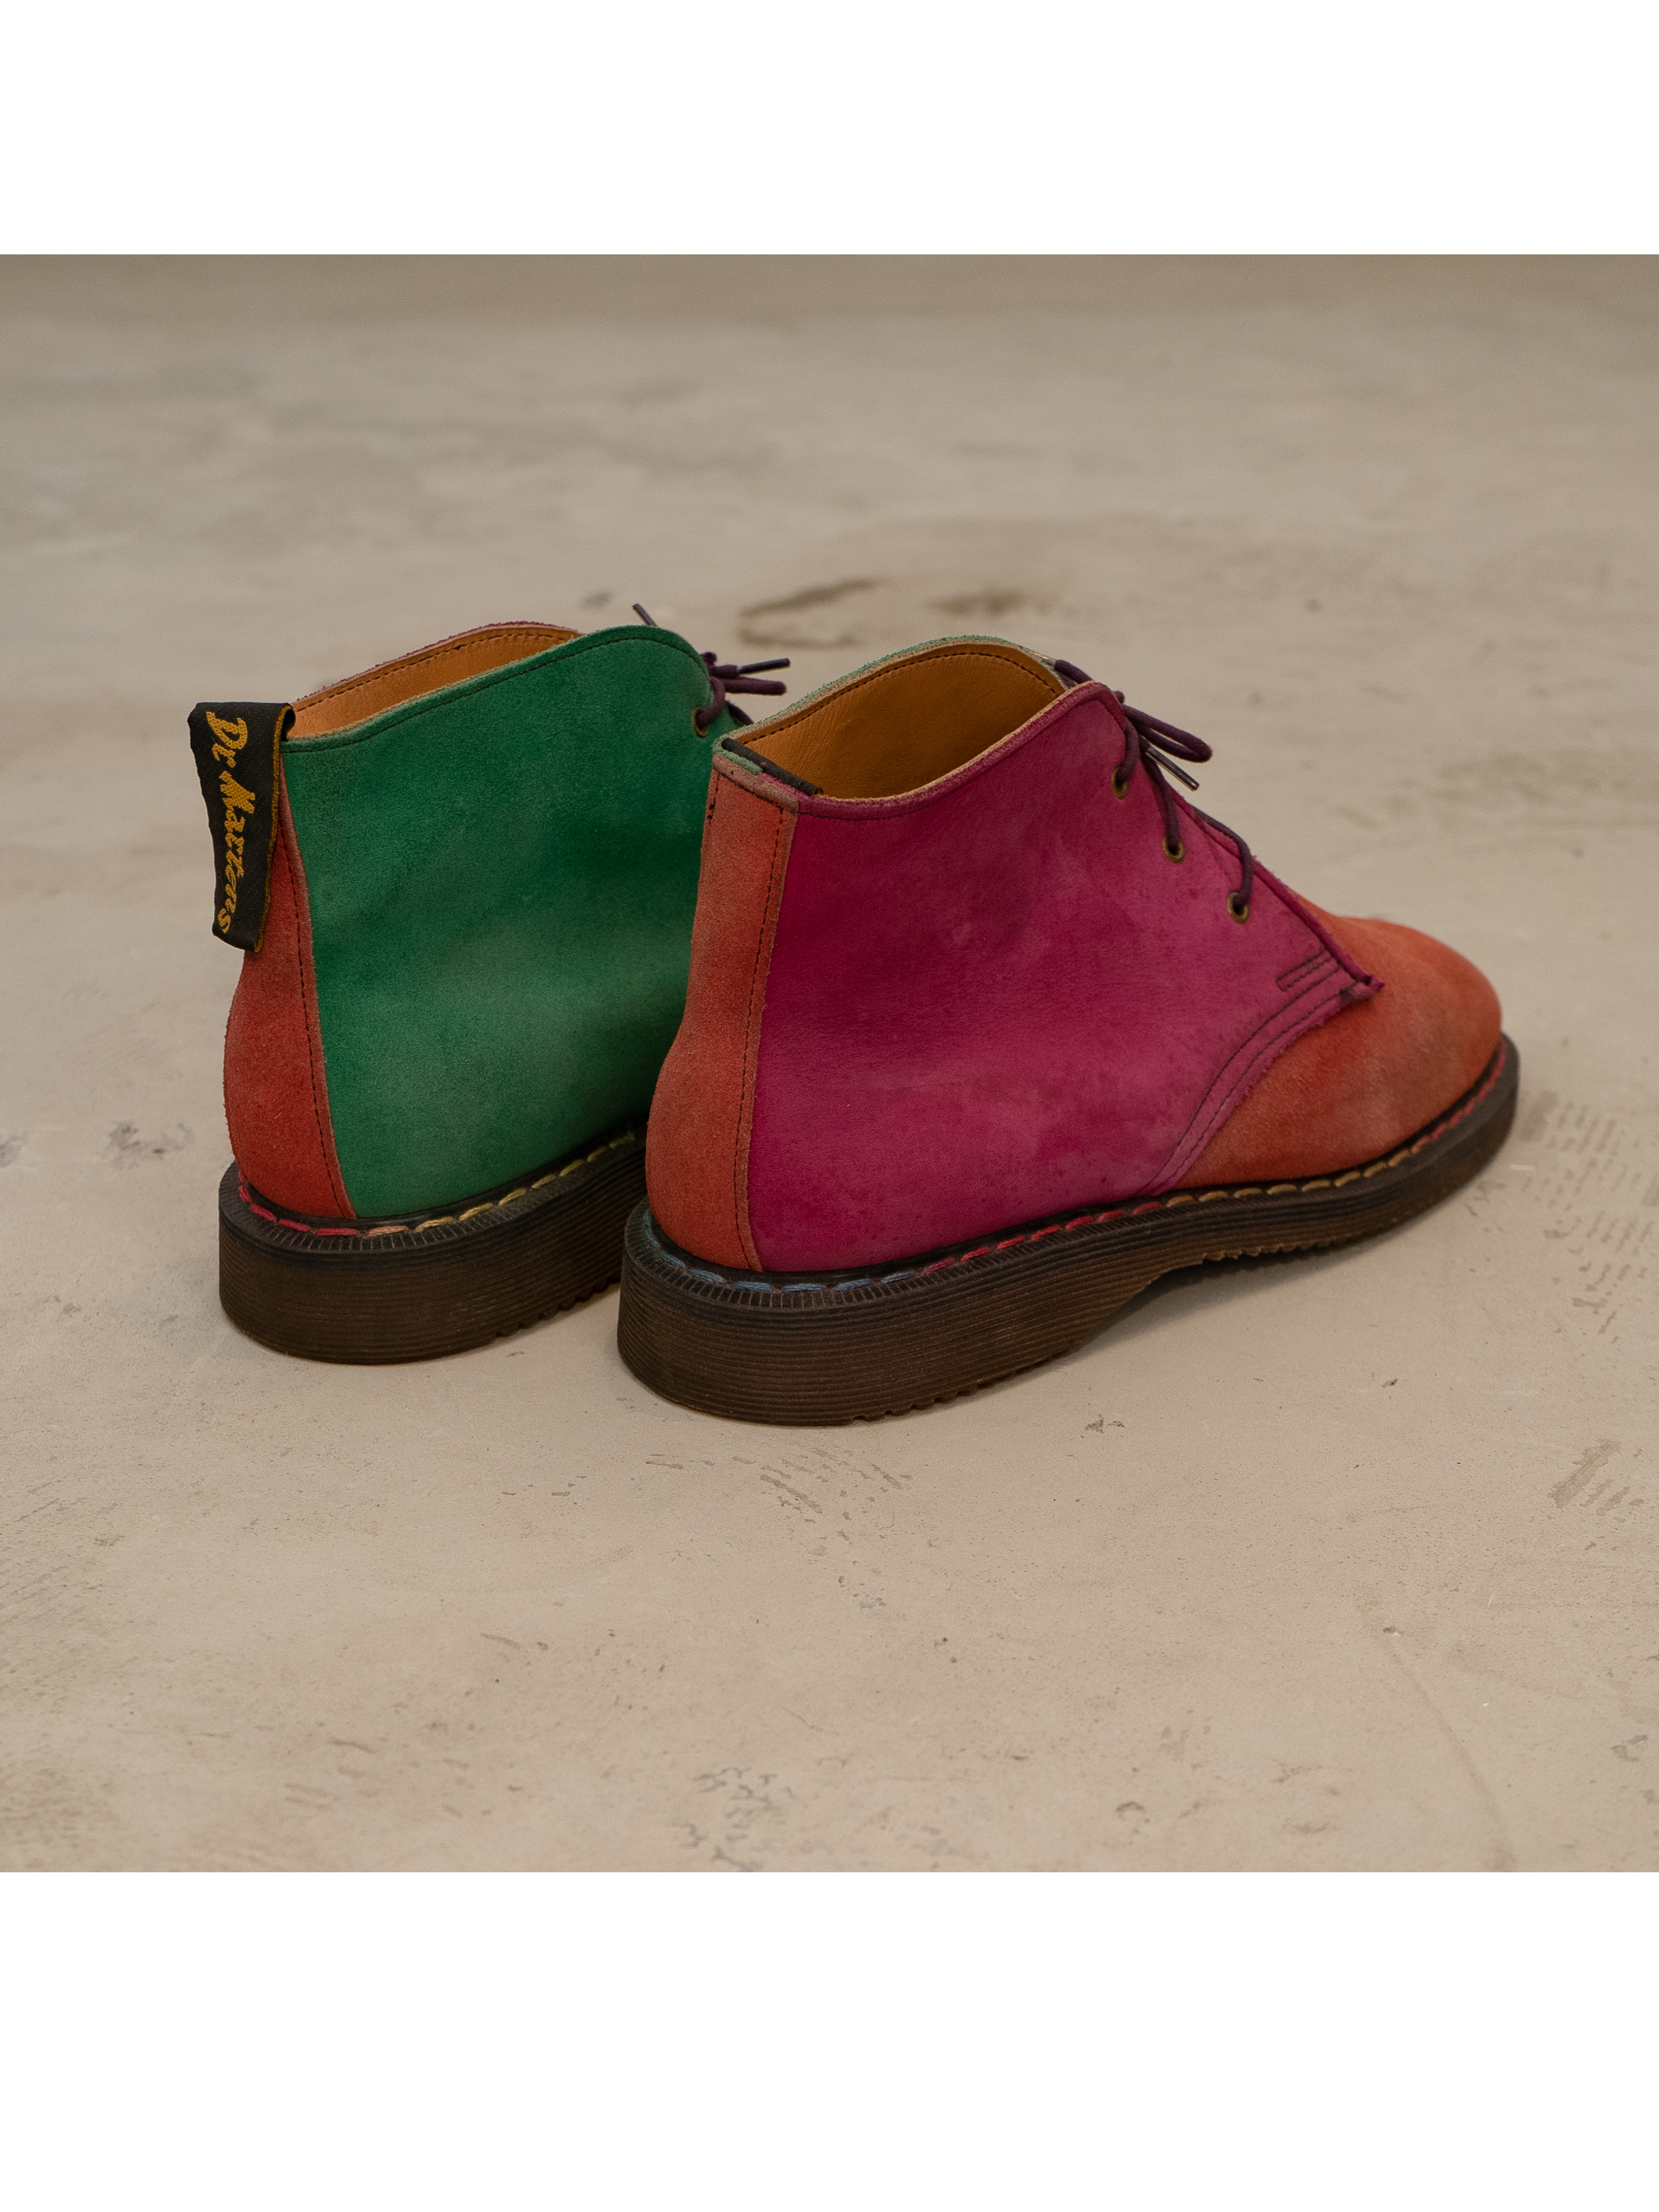 80's DR.MARTENS By SOLOVAIR